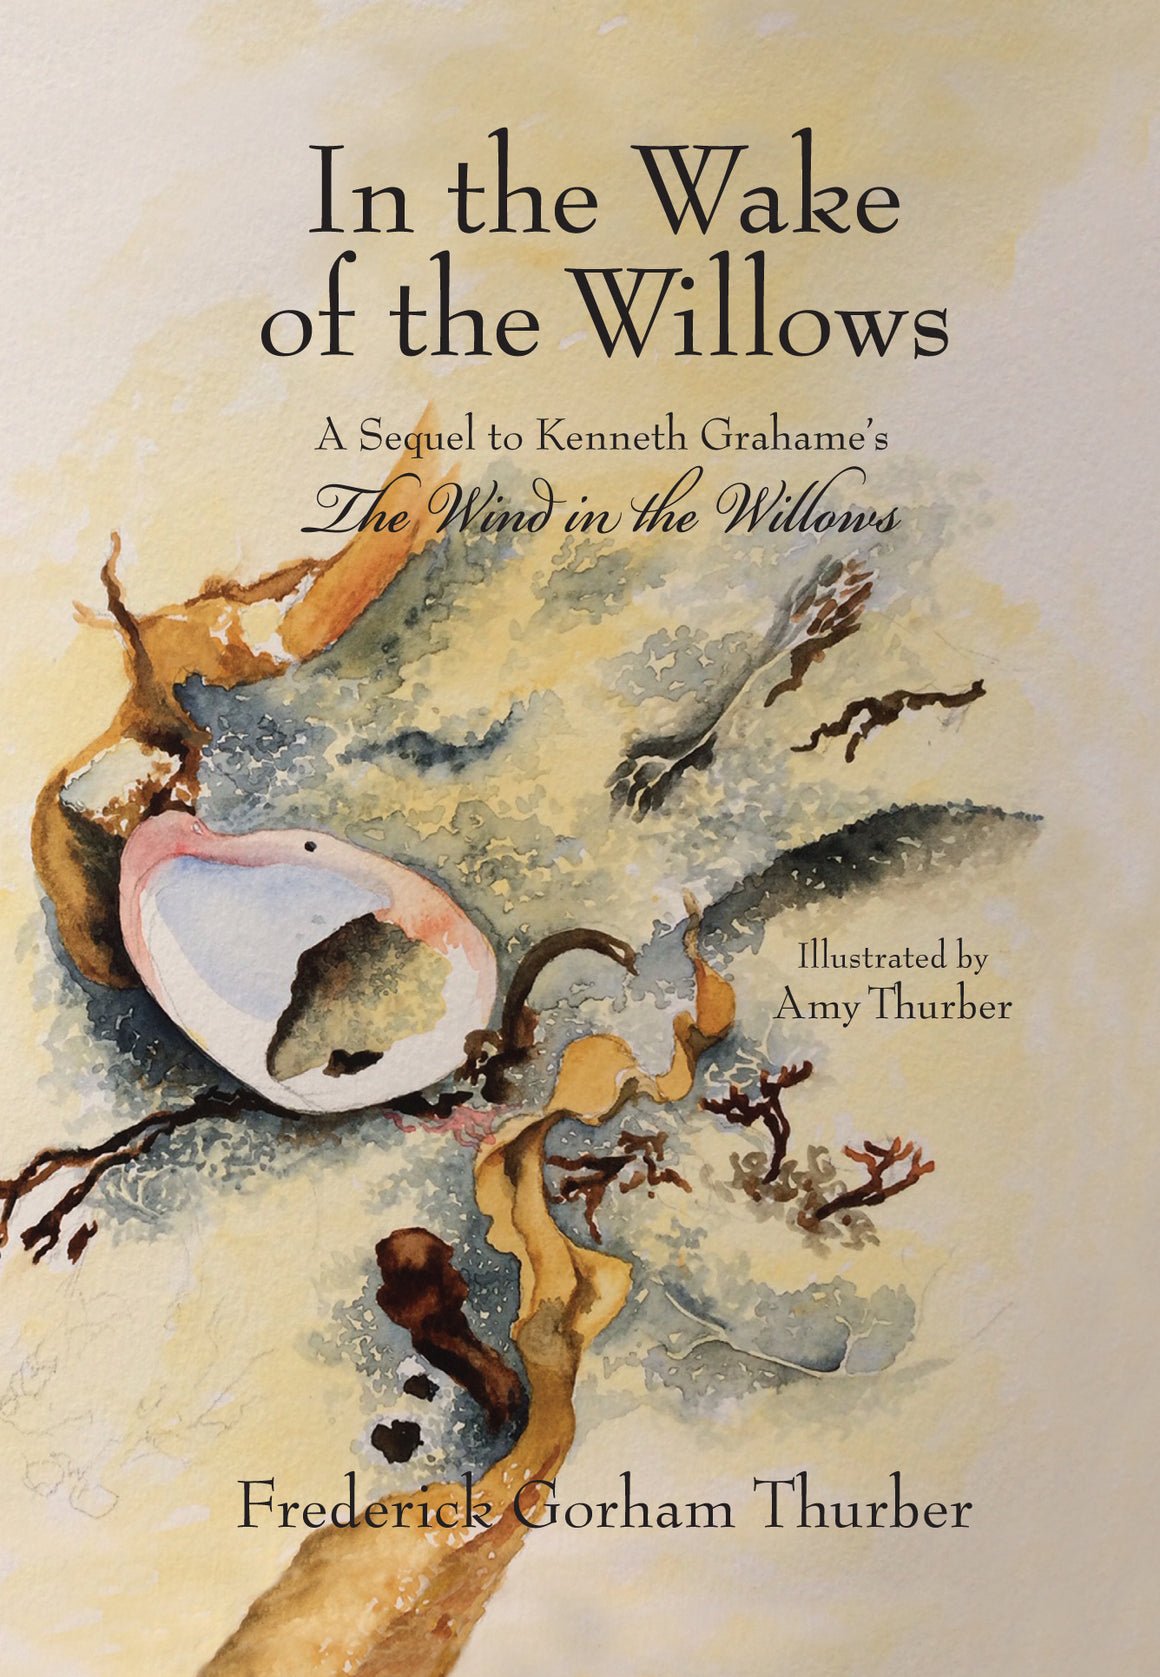 In the Wake of the Willows, by Frederick Gorham Thurber